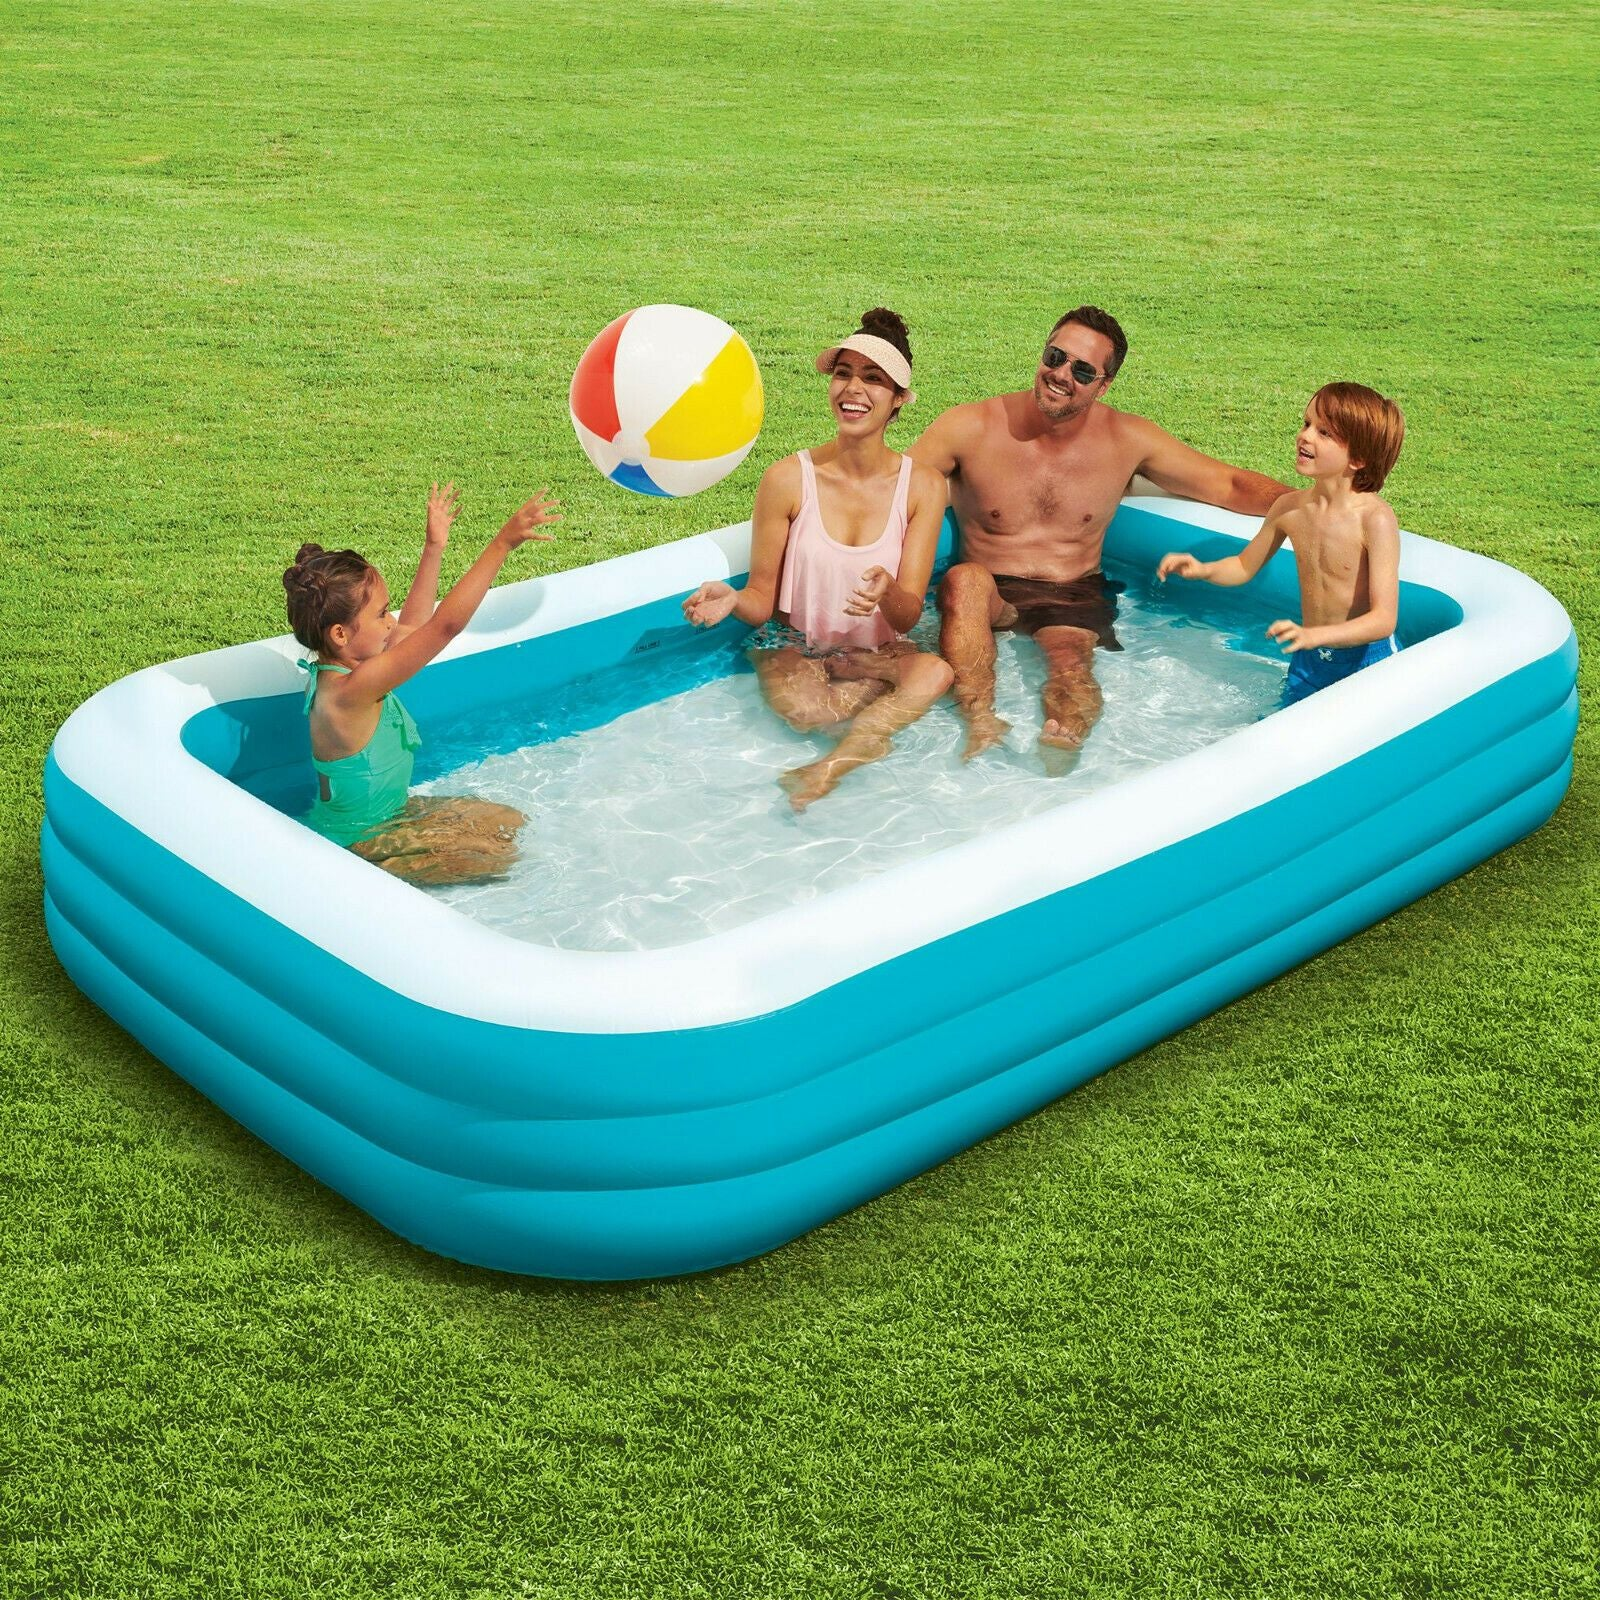 Inflatable Swimming Pool Large 10 Feet Wide for Family Adults and Kids - 10' x 6' x 1.9'